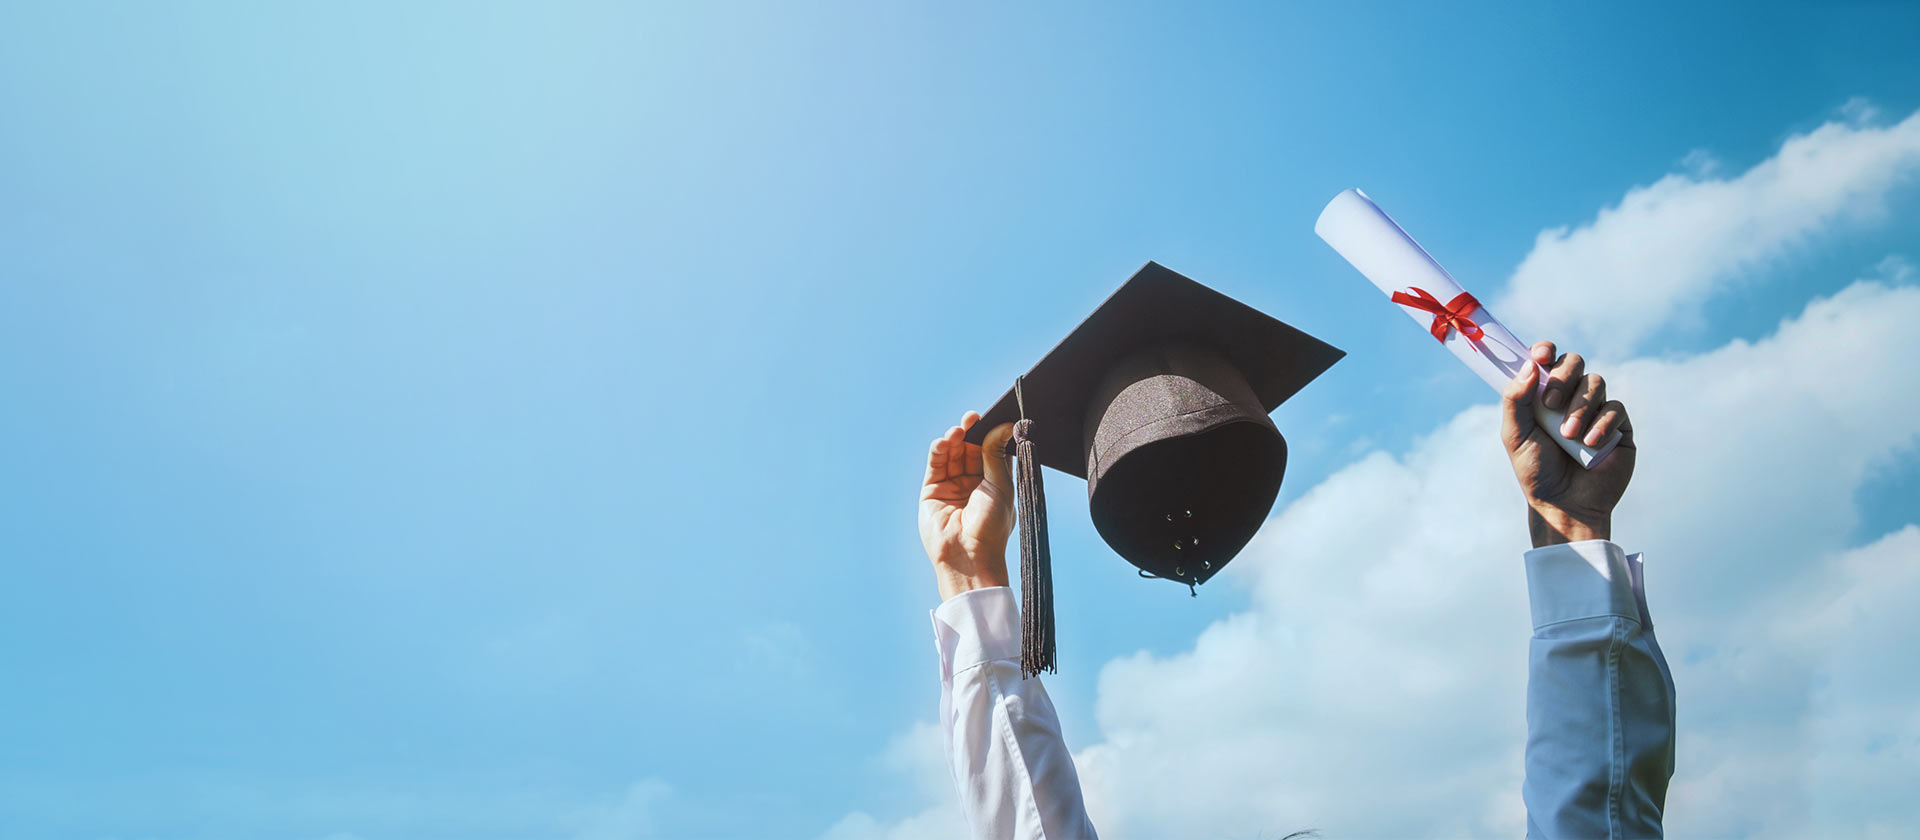 Turn Certifications into University Credit